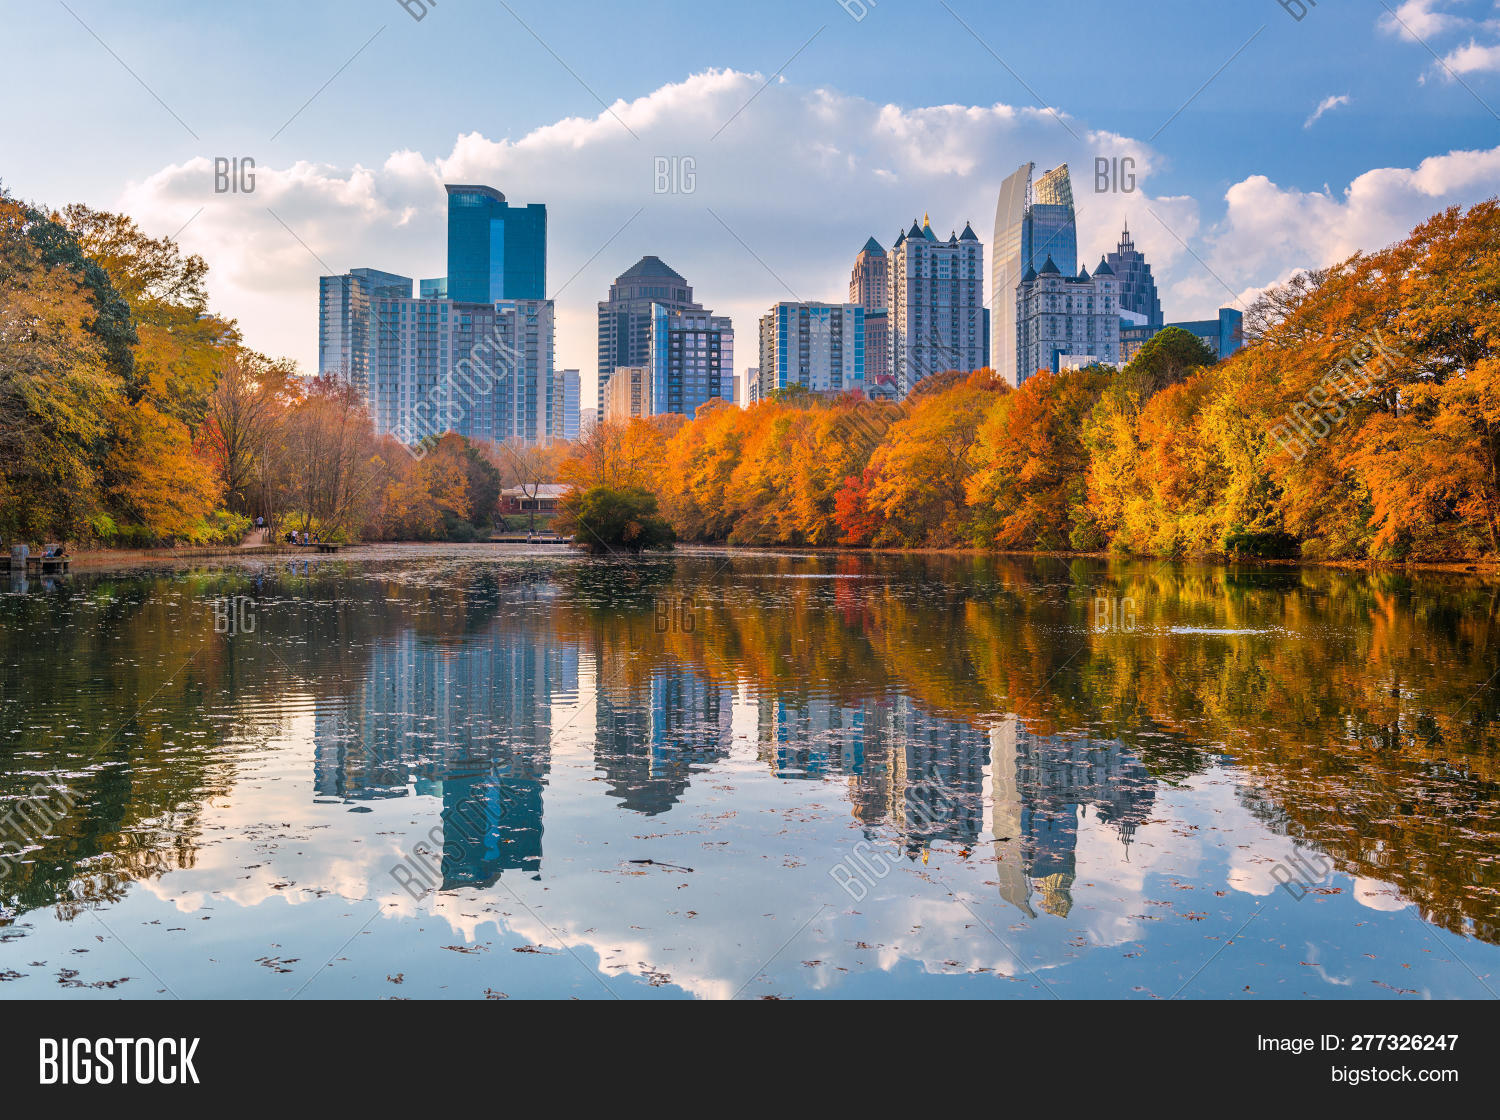 afternoon,america,american,apartments,architecture,atlanta,autumn,beautiful,buildings,city,cityscape,clara,color,colorful,district,downtown,fall,famous,financial,foliage,ga,georgia,lake,landmark,leaves,location,meer,midtown,nature,outdoors,park,piedmont,place,pond,pretty,red,reflection,scene,scenery,scenic,season,skyline,skyscrapers,states,sunset,trees,united,usa,view,water